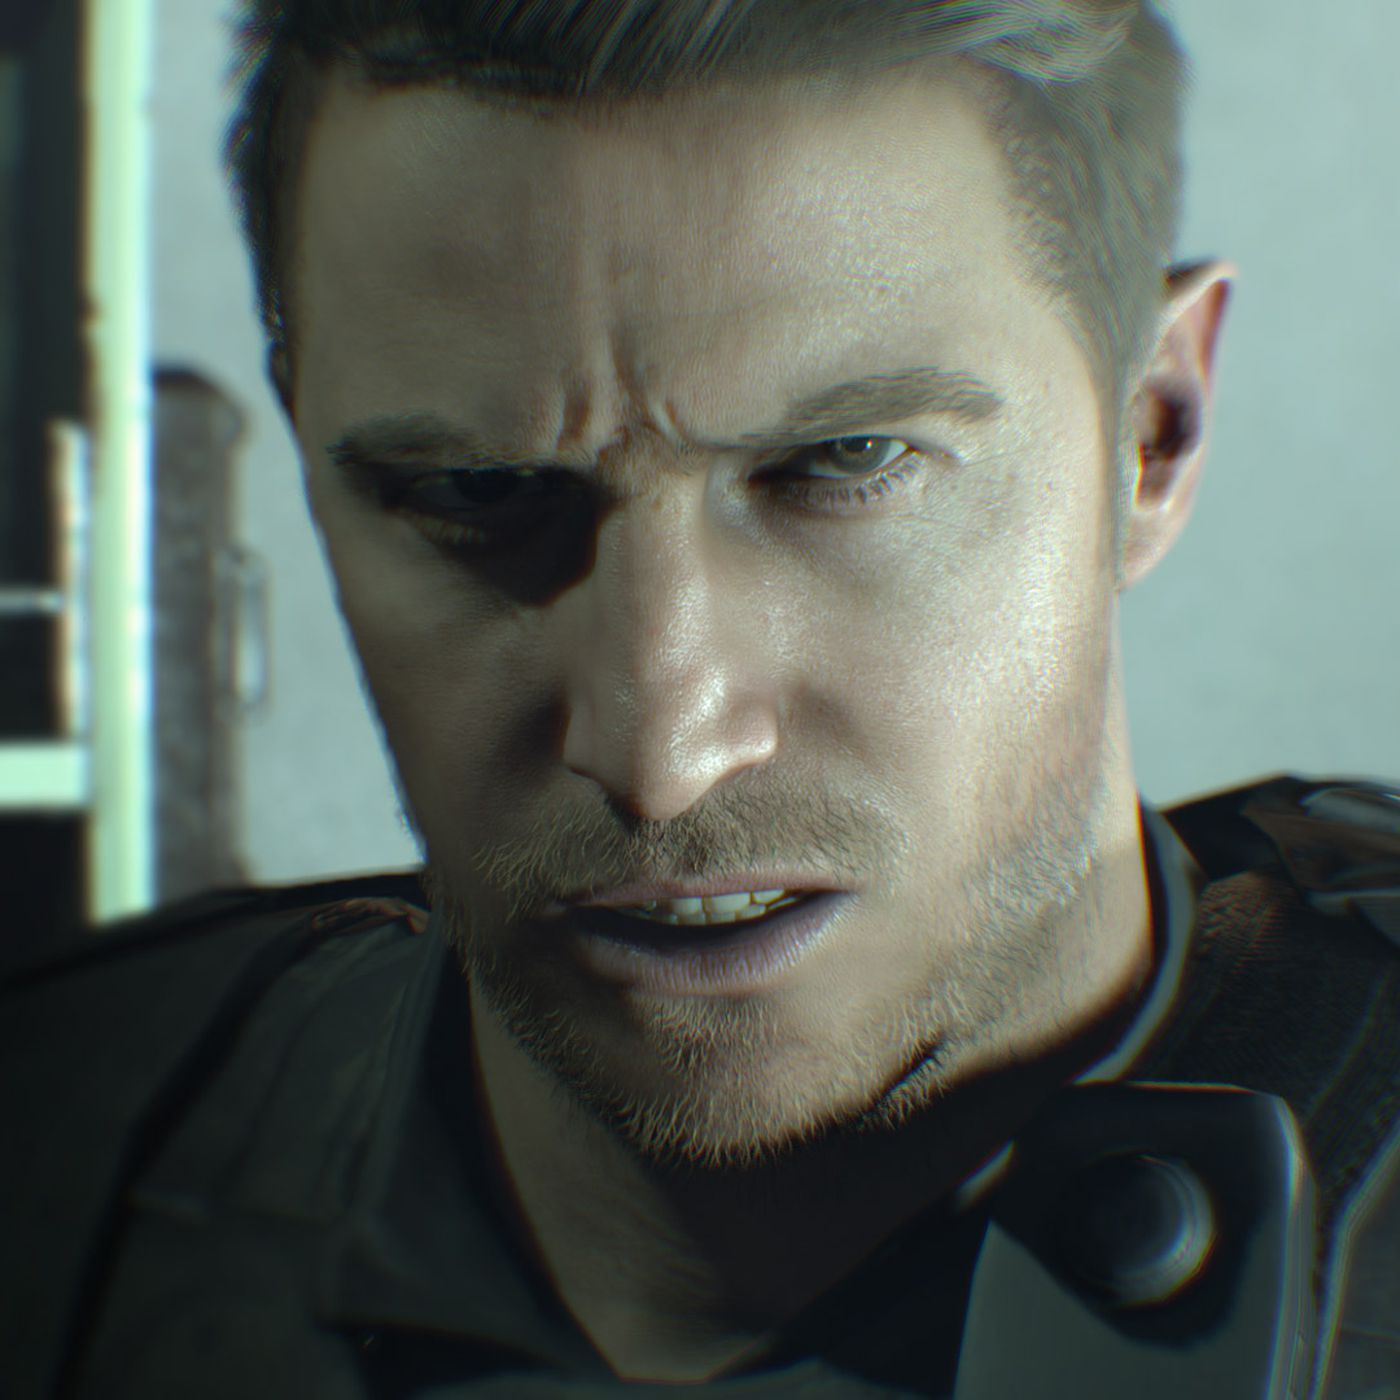 Resident Evil 7 S Next Dlc Stars Chris Redfield Polygon